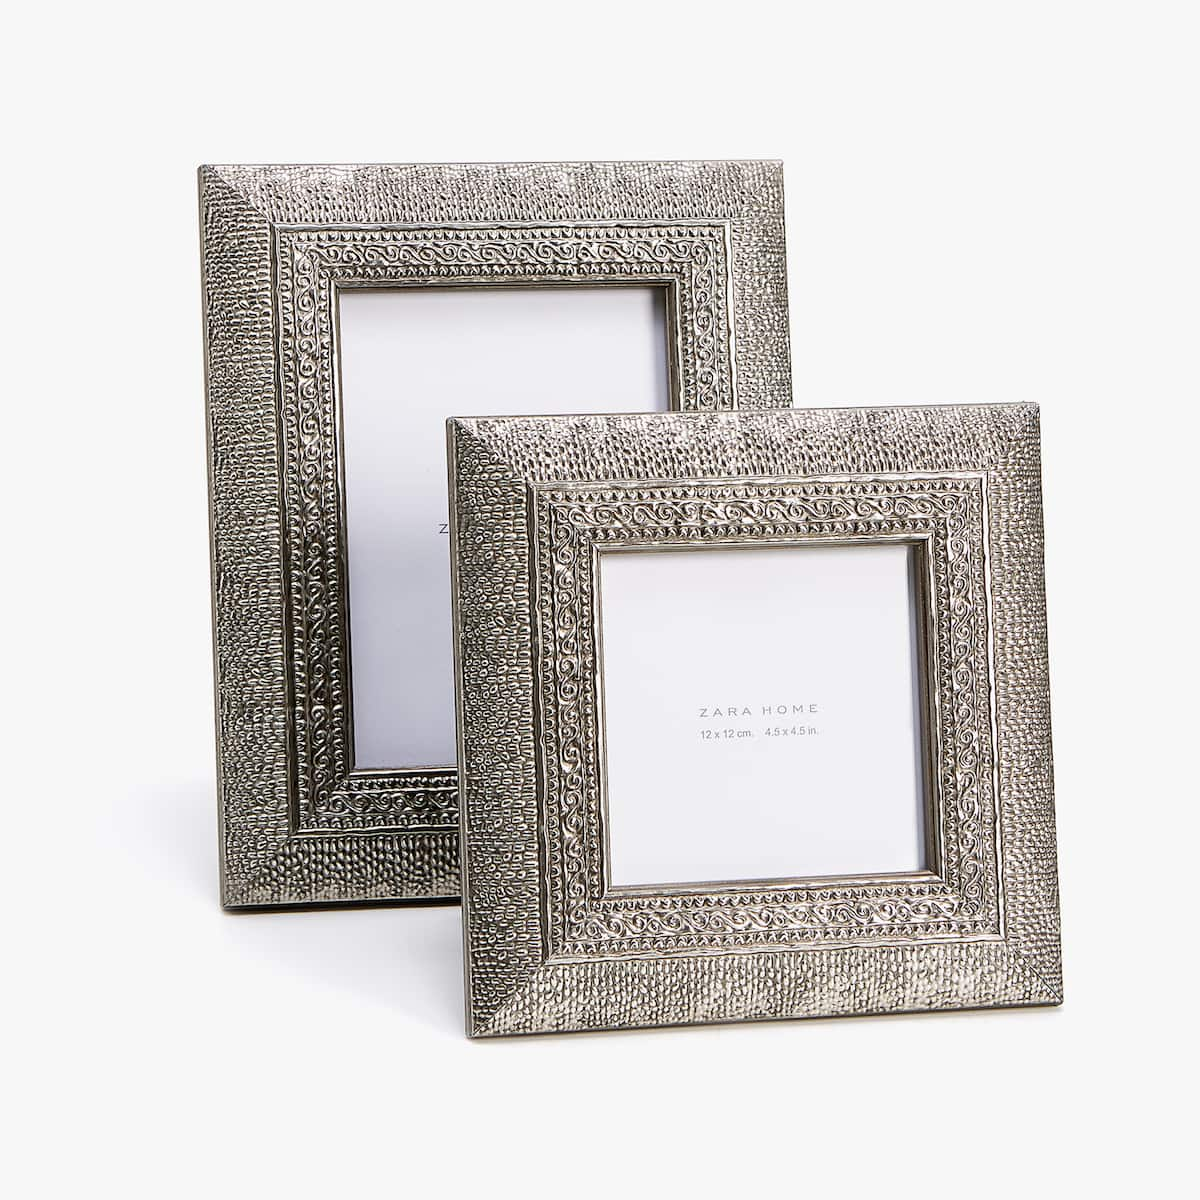 METAL DESIGN WOODEN FRAME - PHOTO SIZE 5x7 in. - PHOTO FRAMES ...